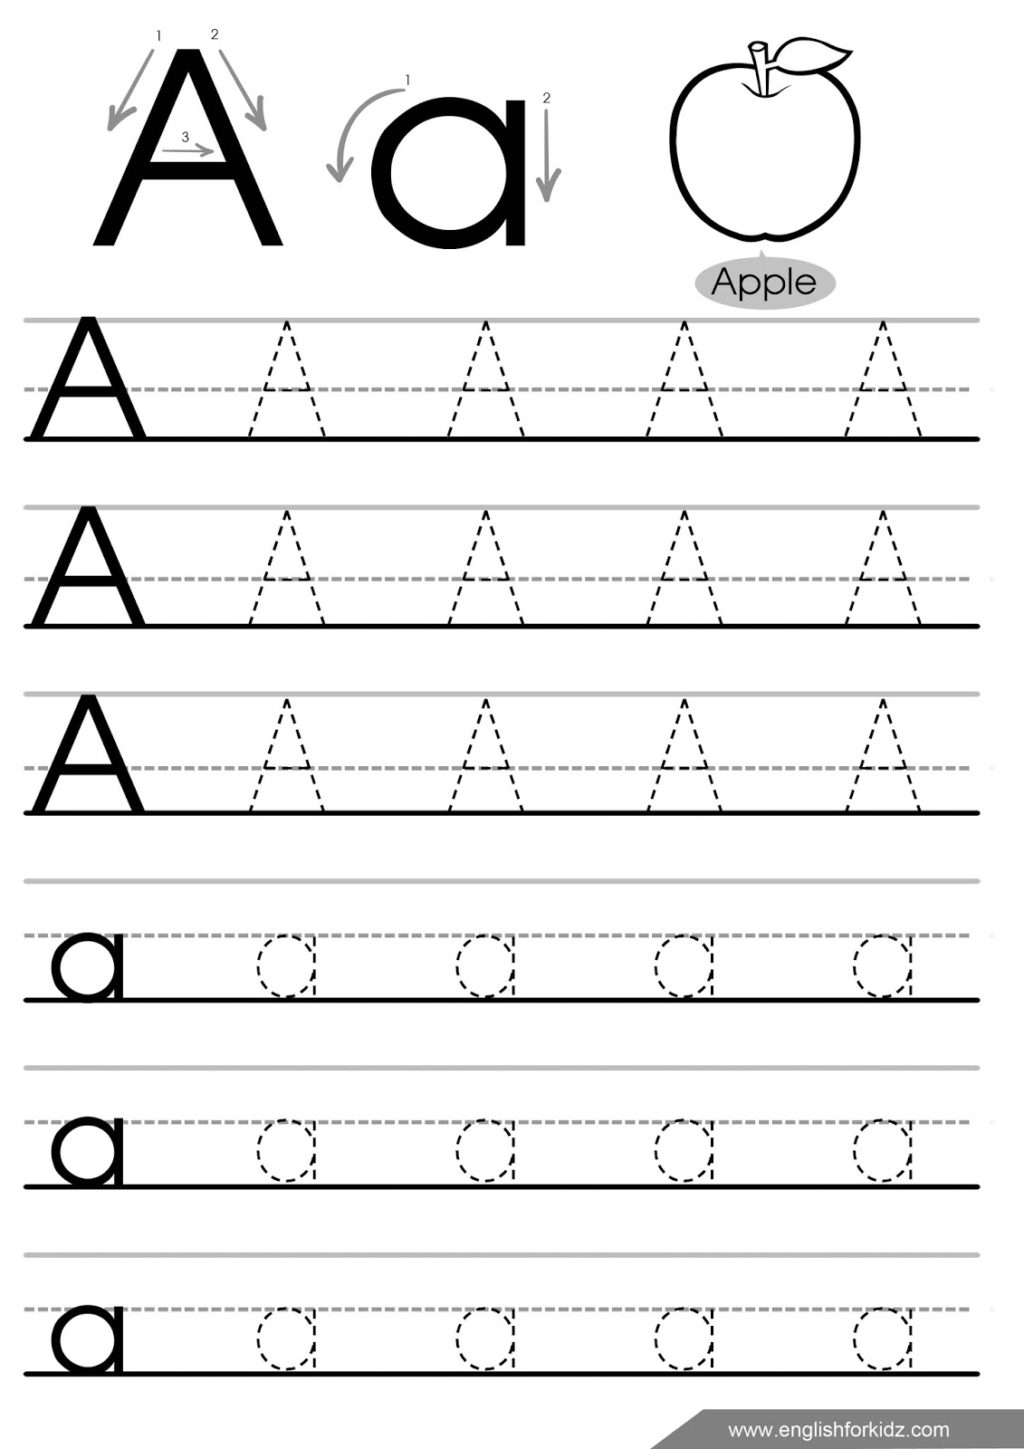 Worksheet ~ Printable Shape Tracing Worksheets Name Free For for Create A Name Tracing Sheet